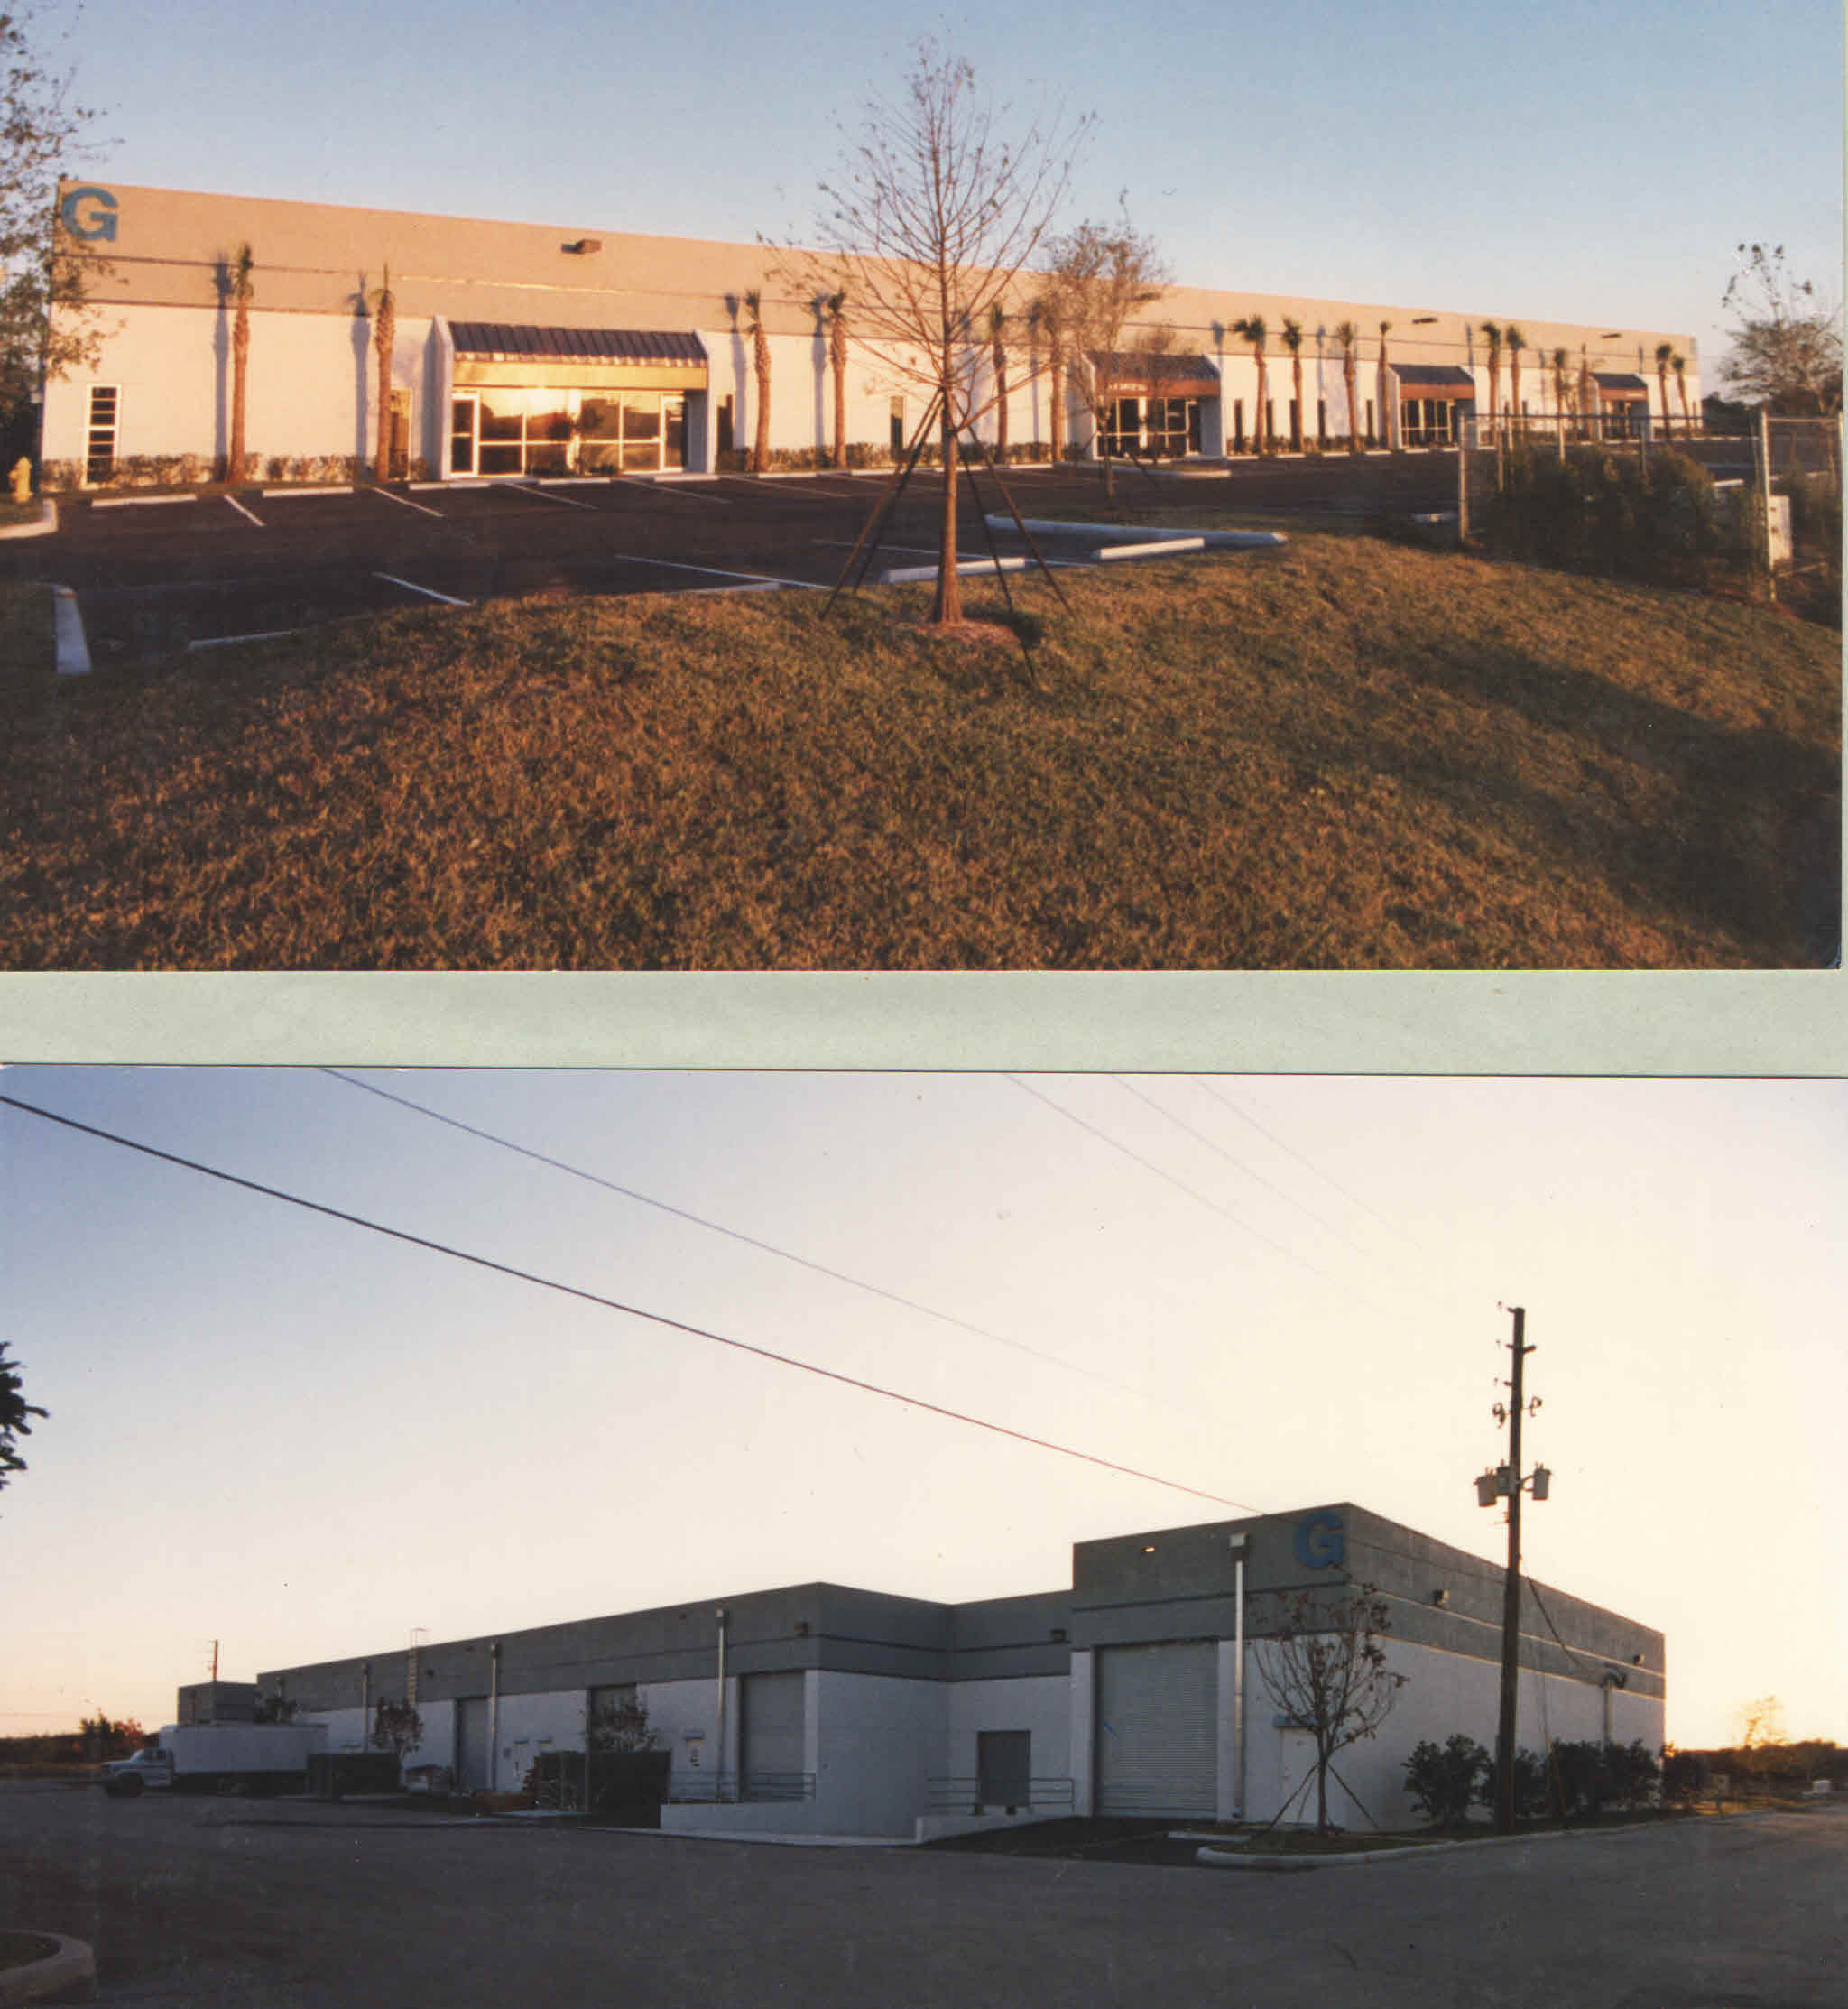 Construction of 30,000 s.f. storefront warehouses . coconut creek Florida 1996